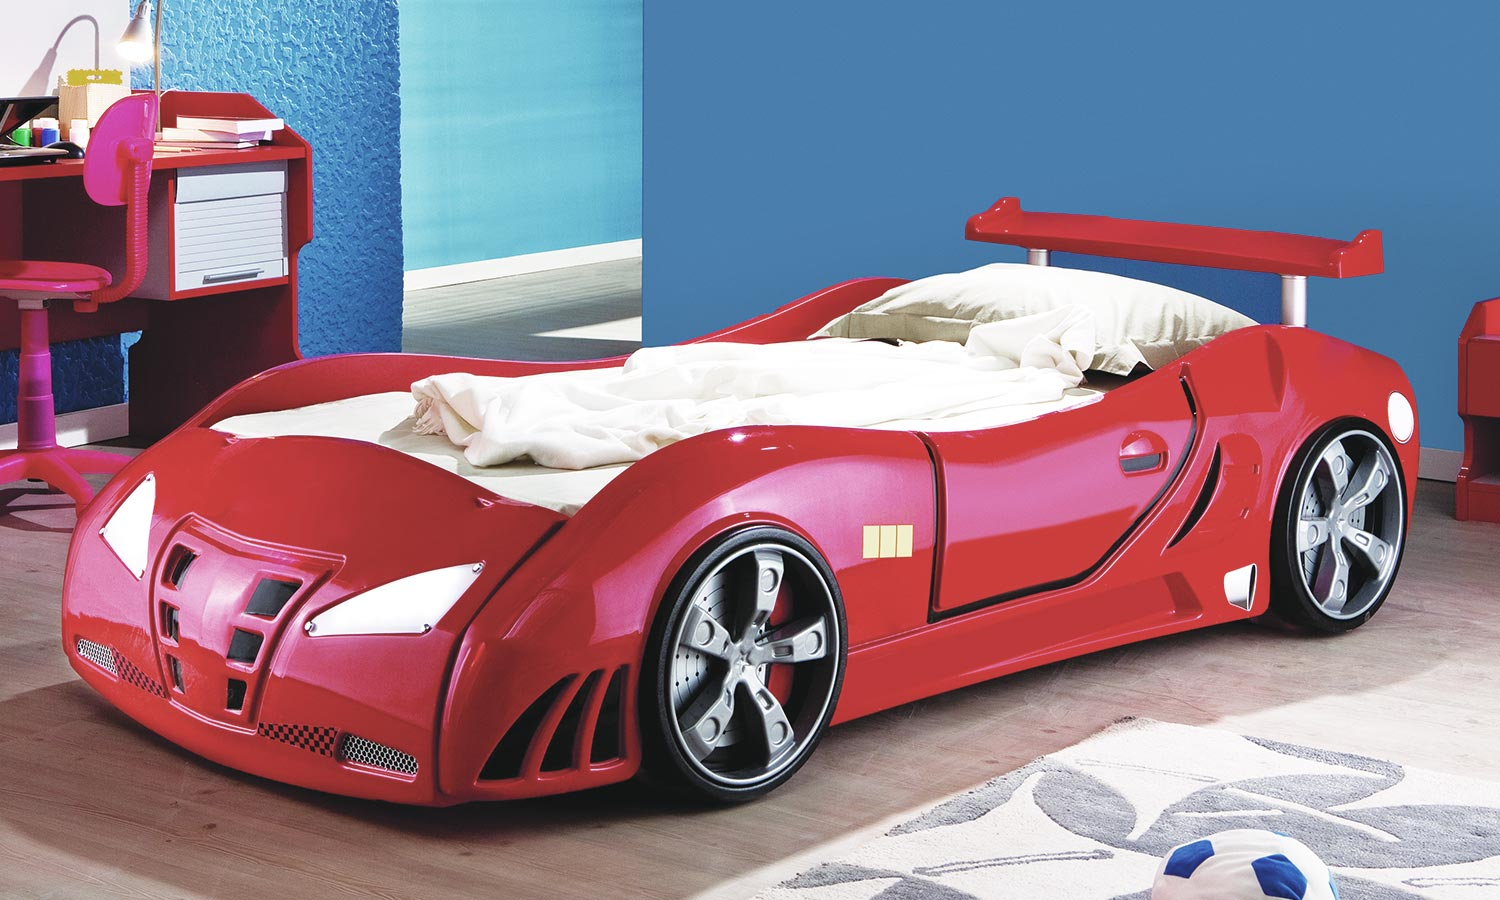 A small children's bed shaped like a car